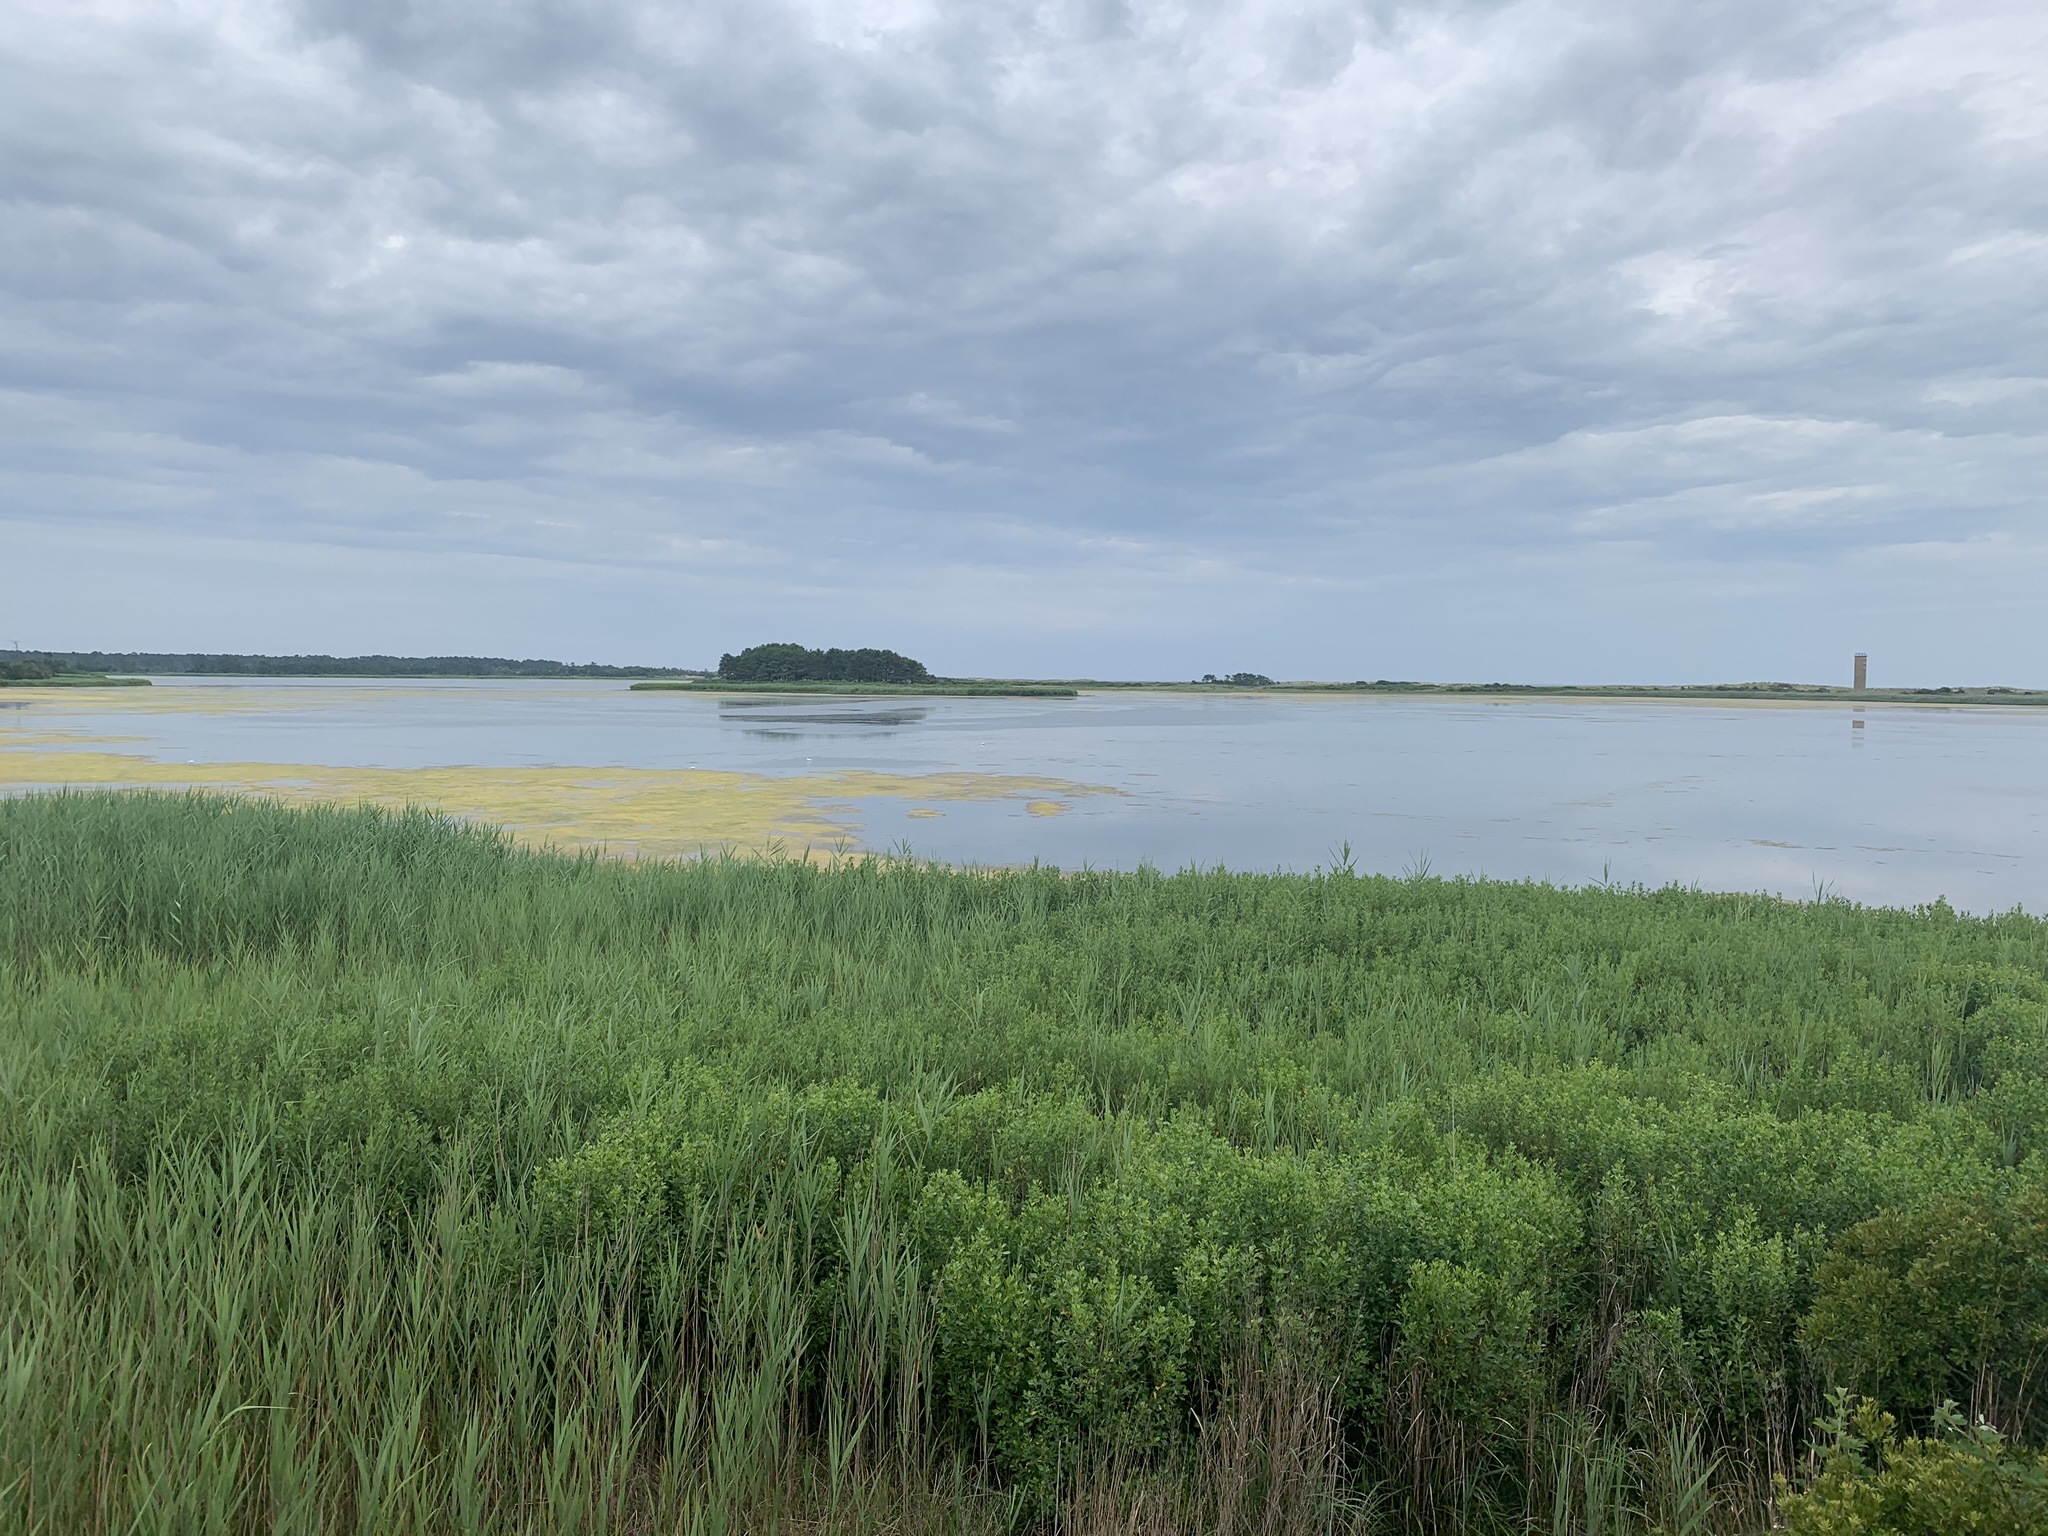 Mostly cloudy skies along the Cape Henlopen bike trail in Delaware.